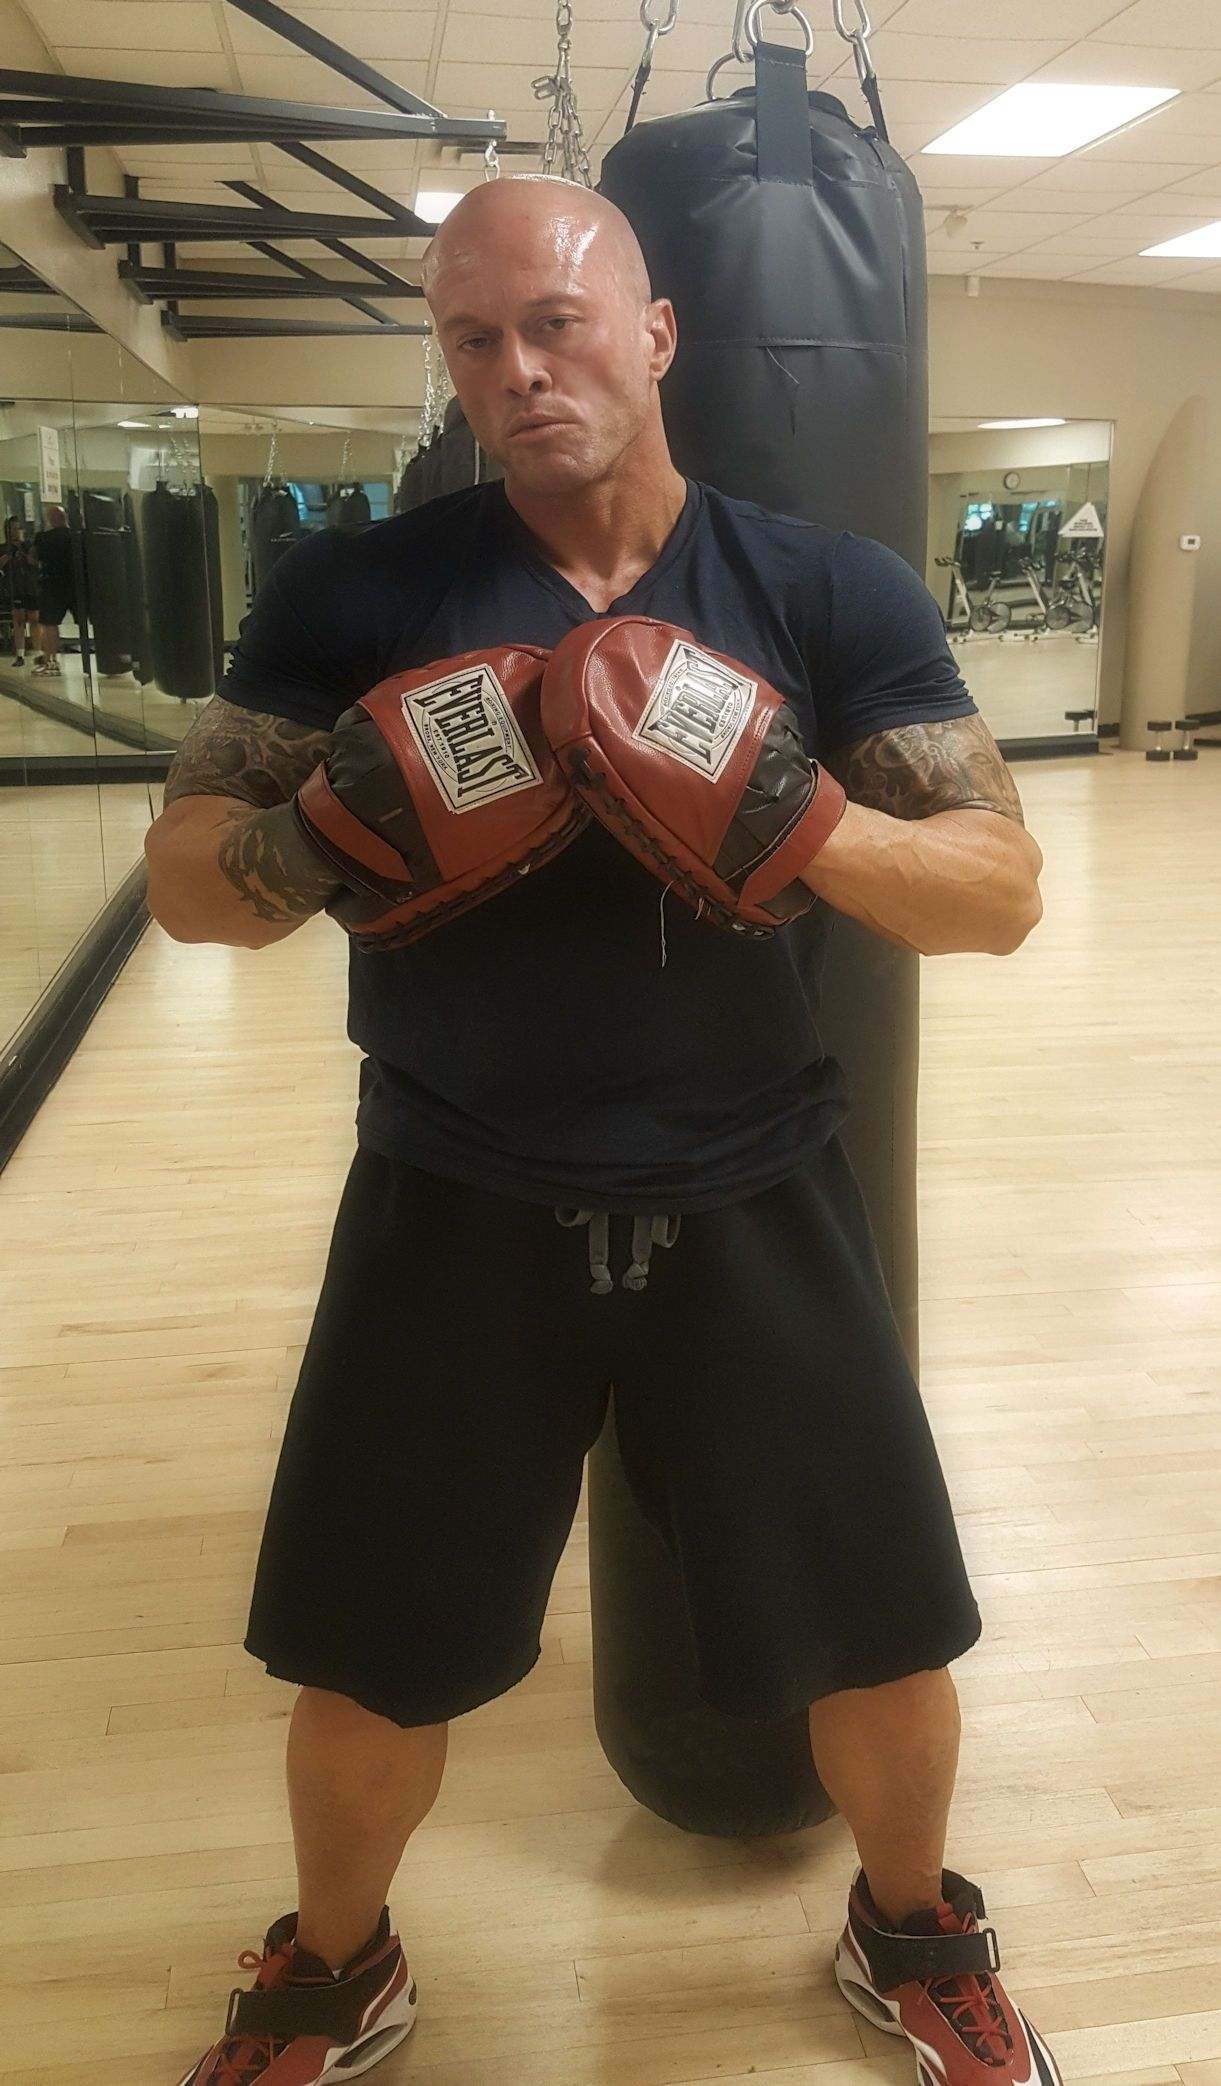 Model & Actor John Joseph Quinlan Gym Training 7-12-2017 #JohnQuinlan